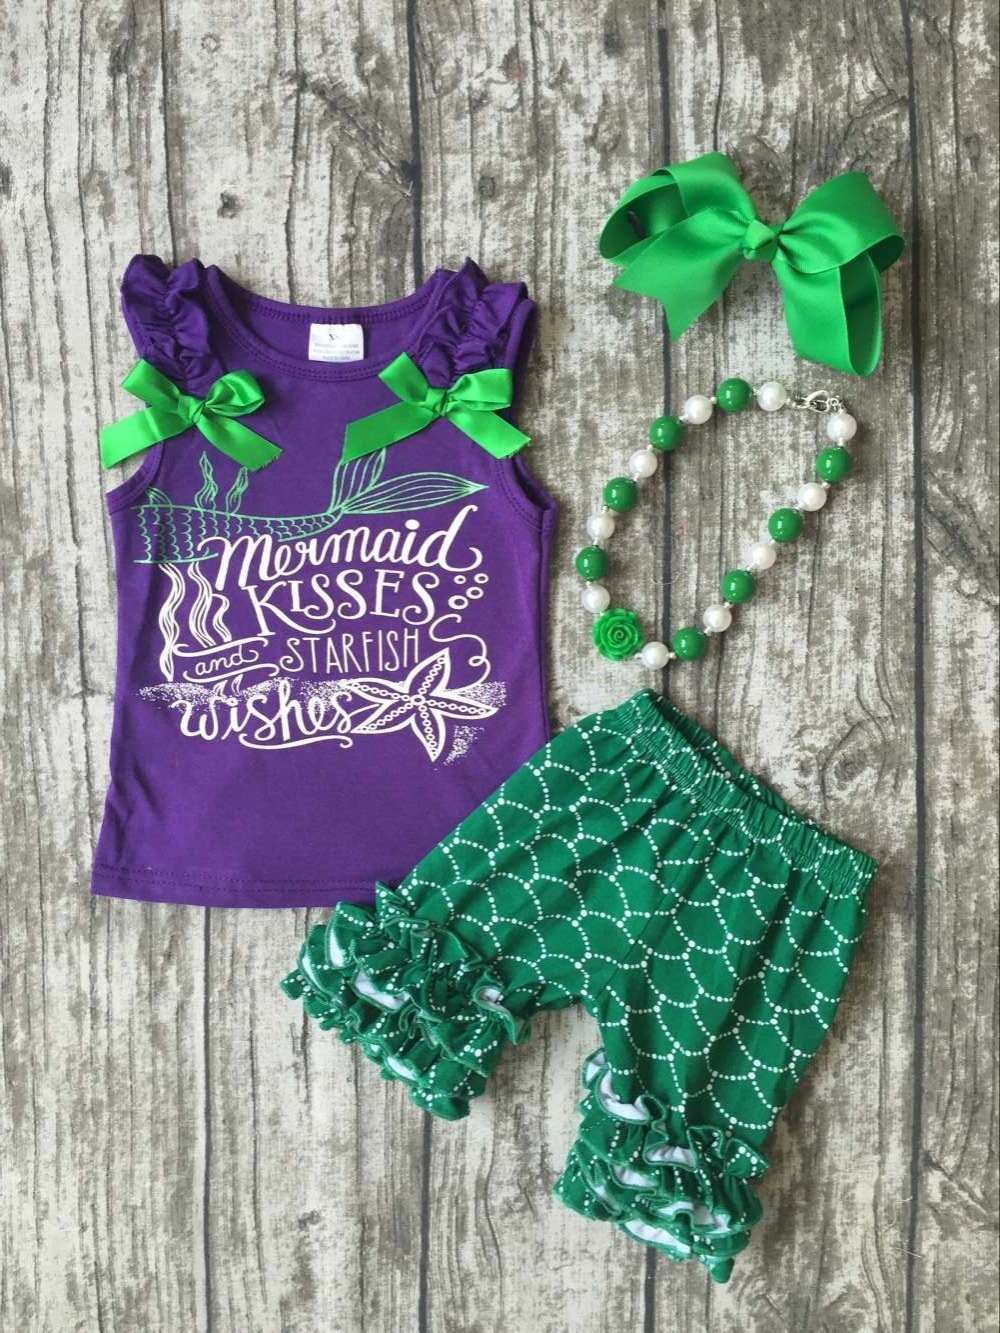 Baby Girls Summer Clothes Mermaid Kisses Starfish Wishes